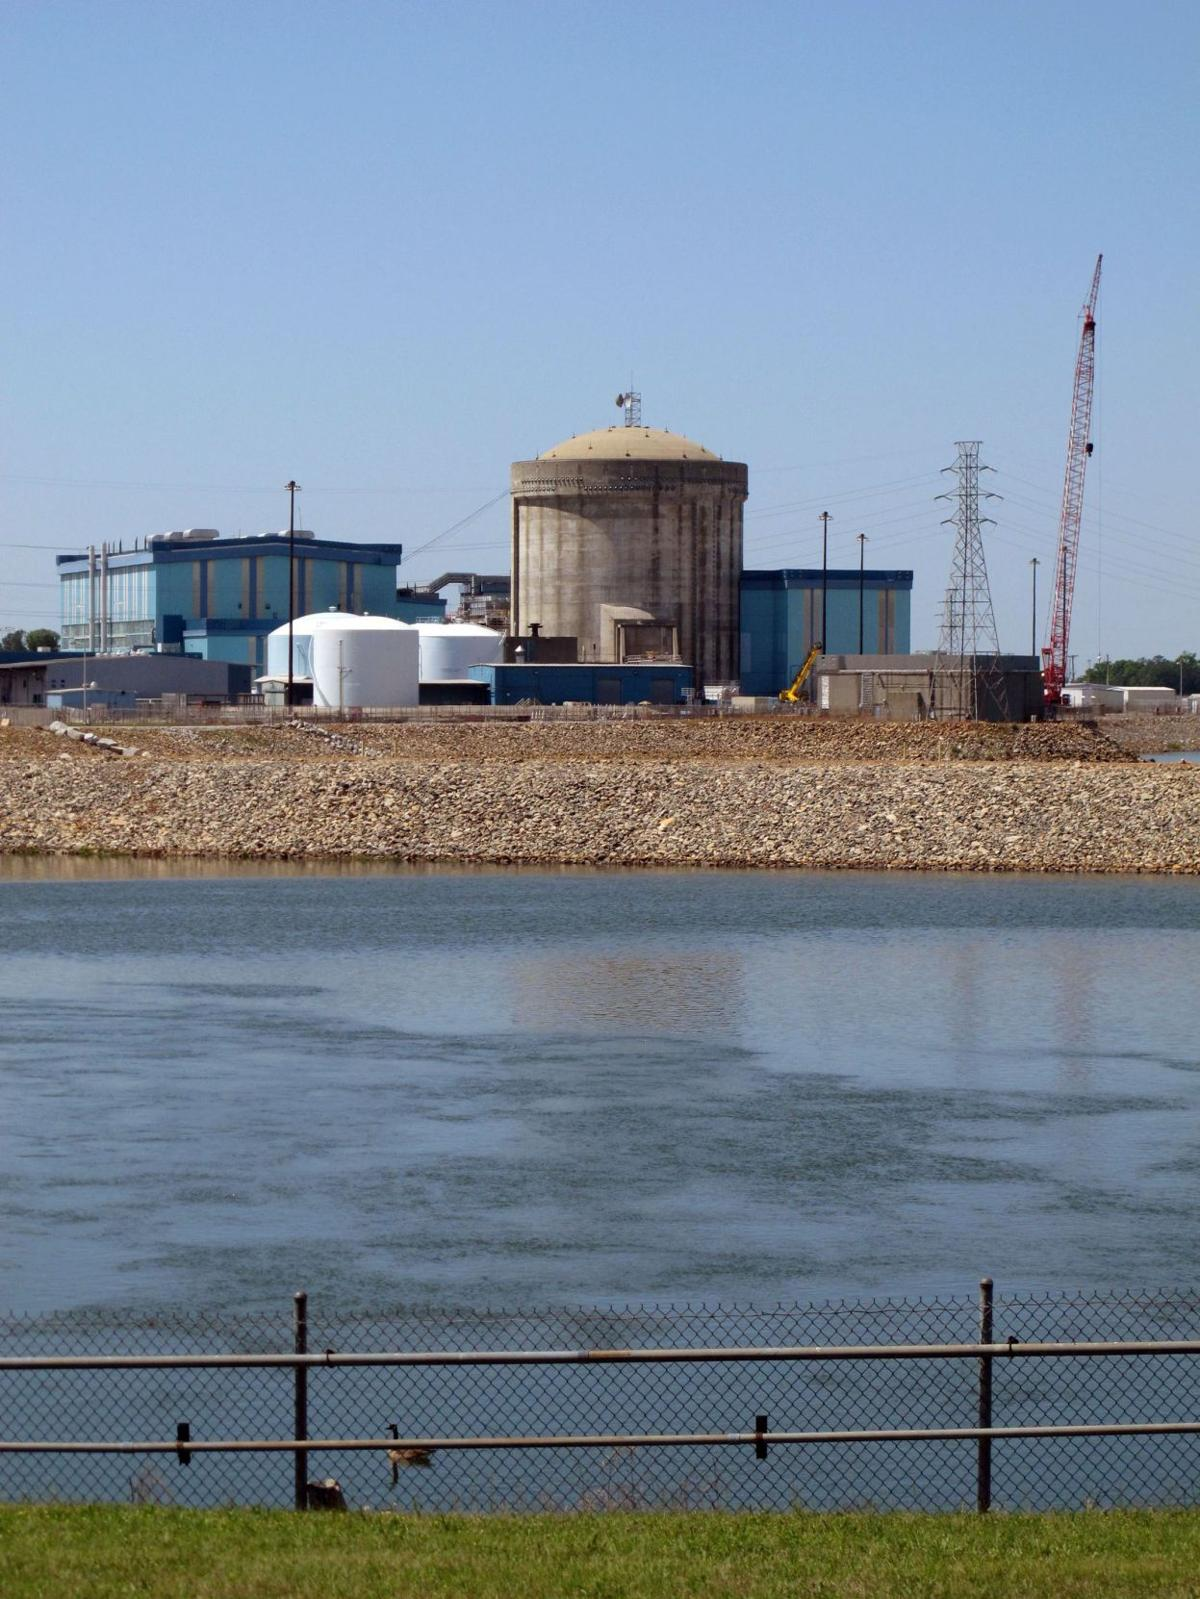 Regulators discussing safety at S. Carolina nuclear plant